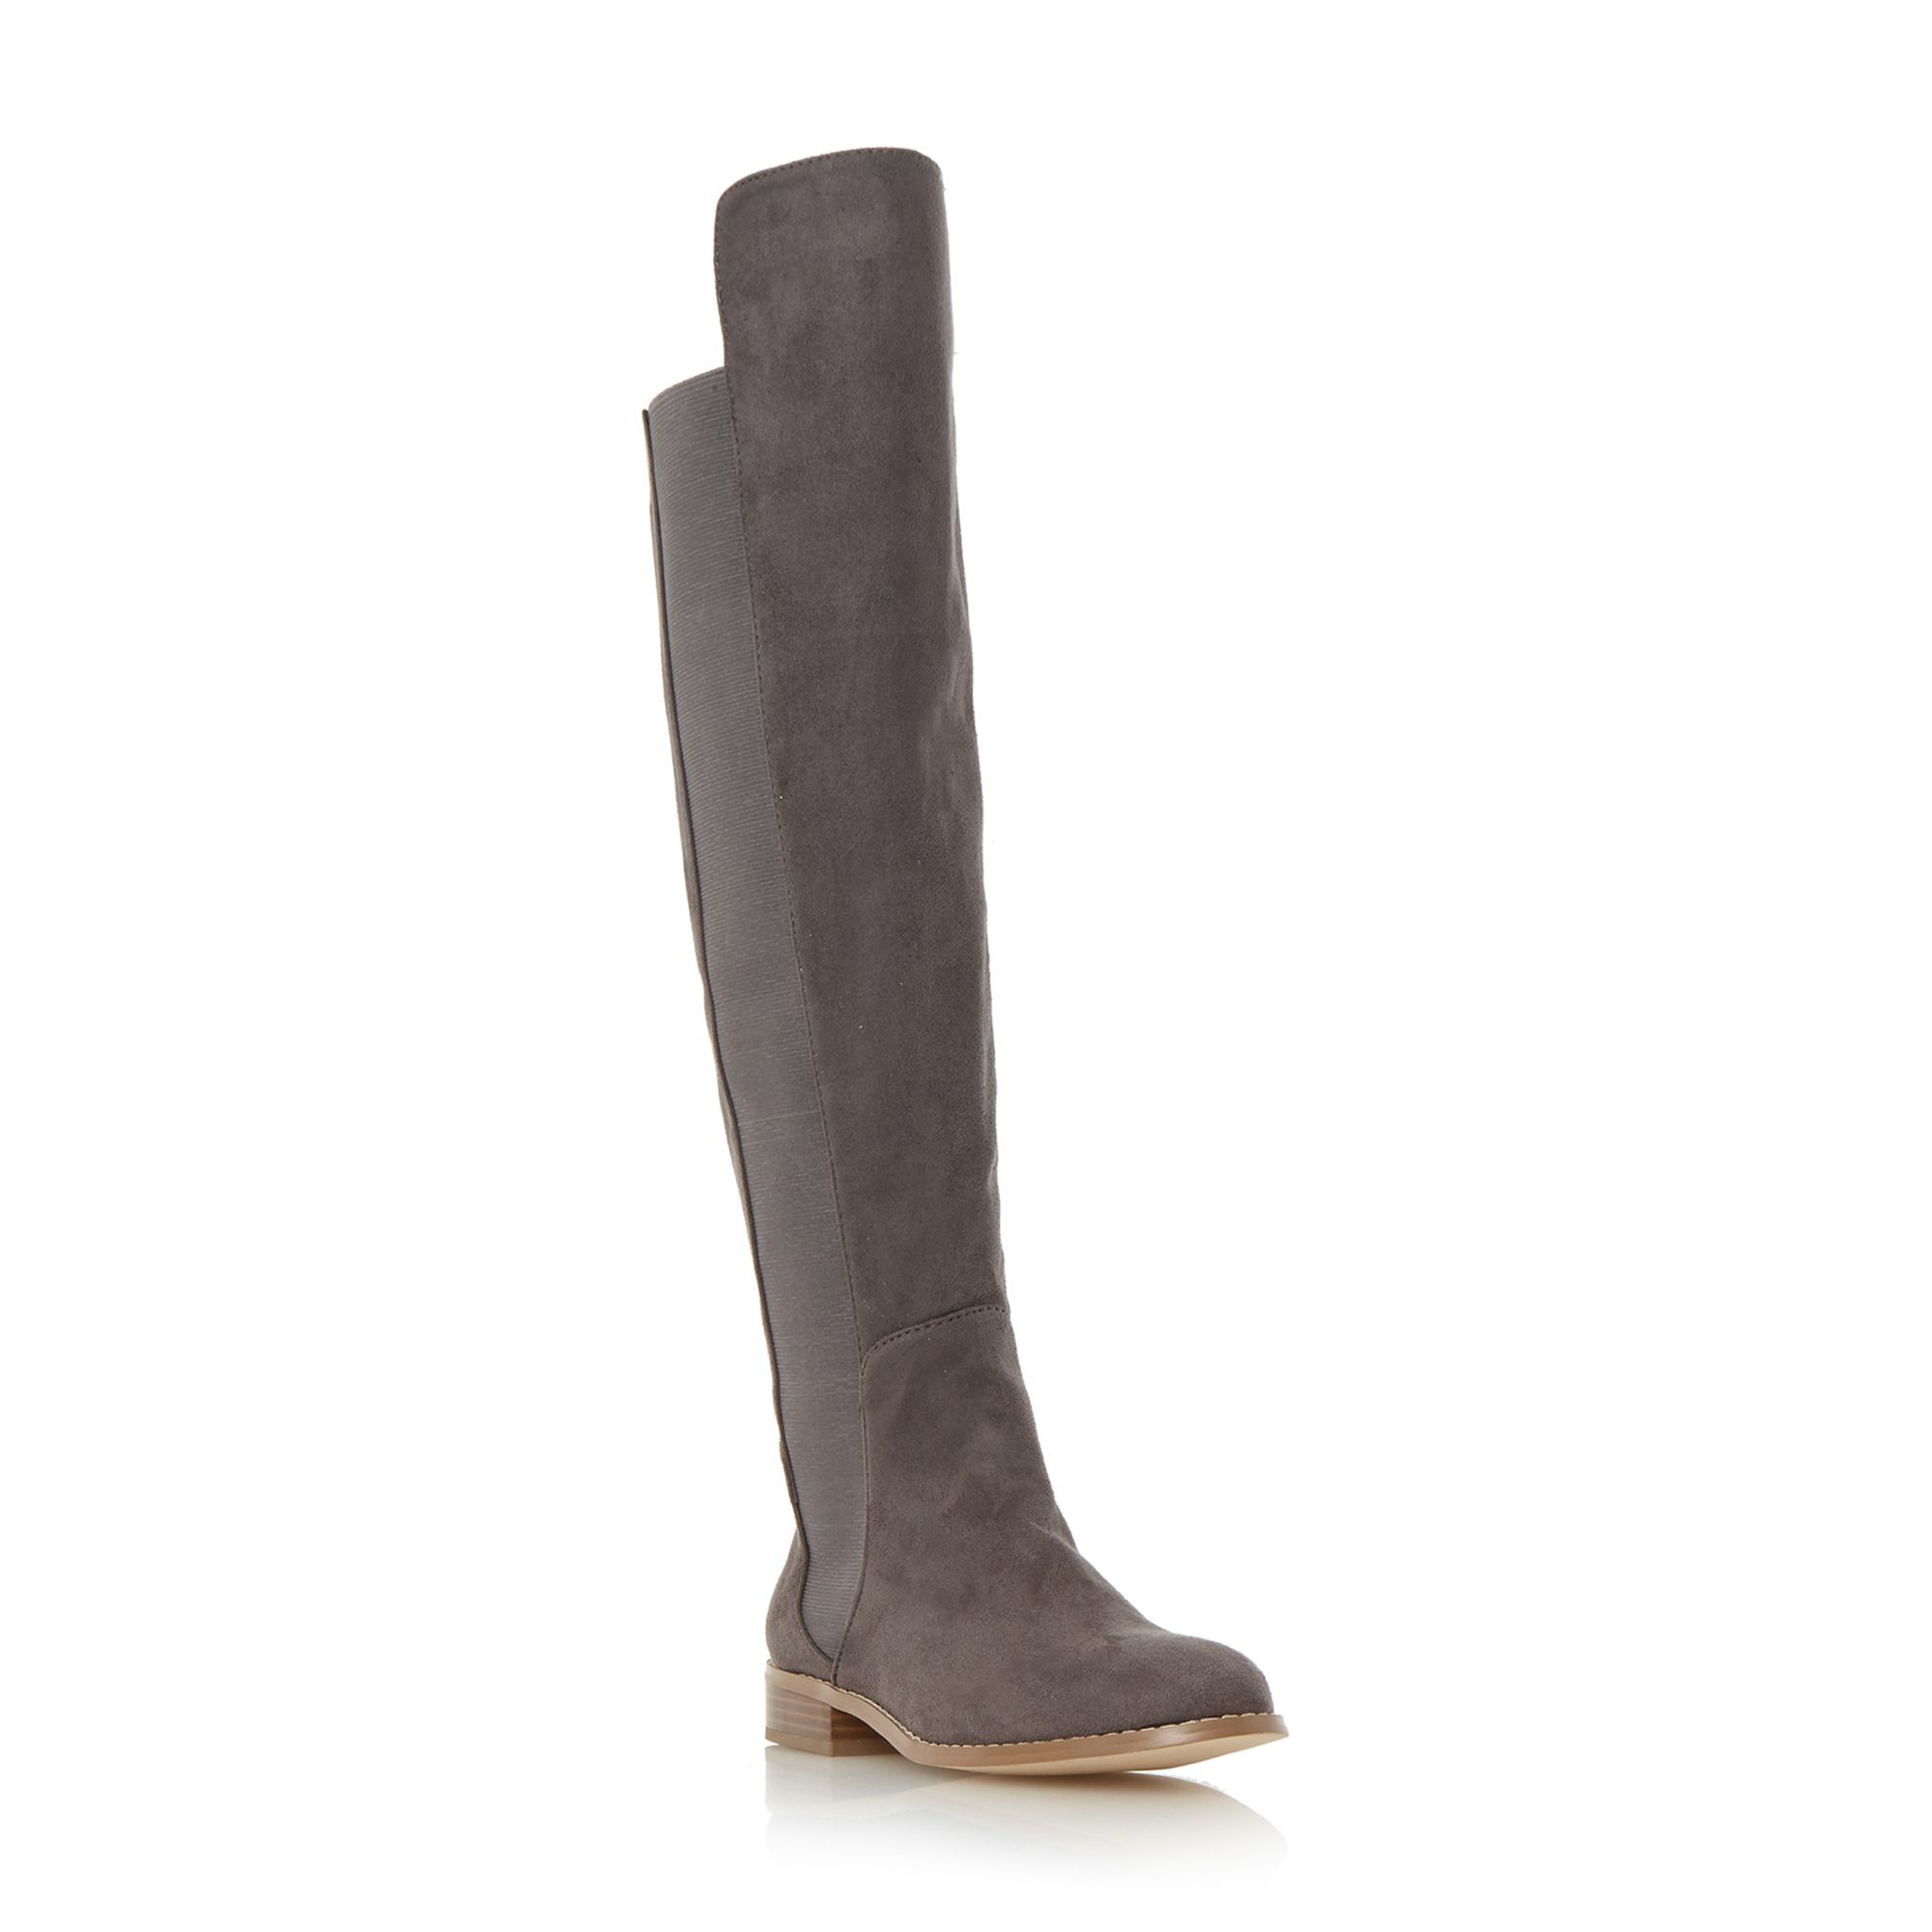 Dune Toulus Over The Knee Flat Boots in Gray | Lyst